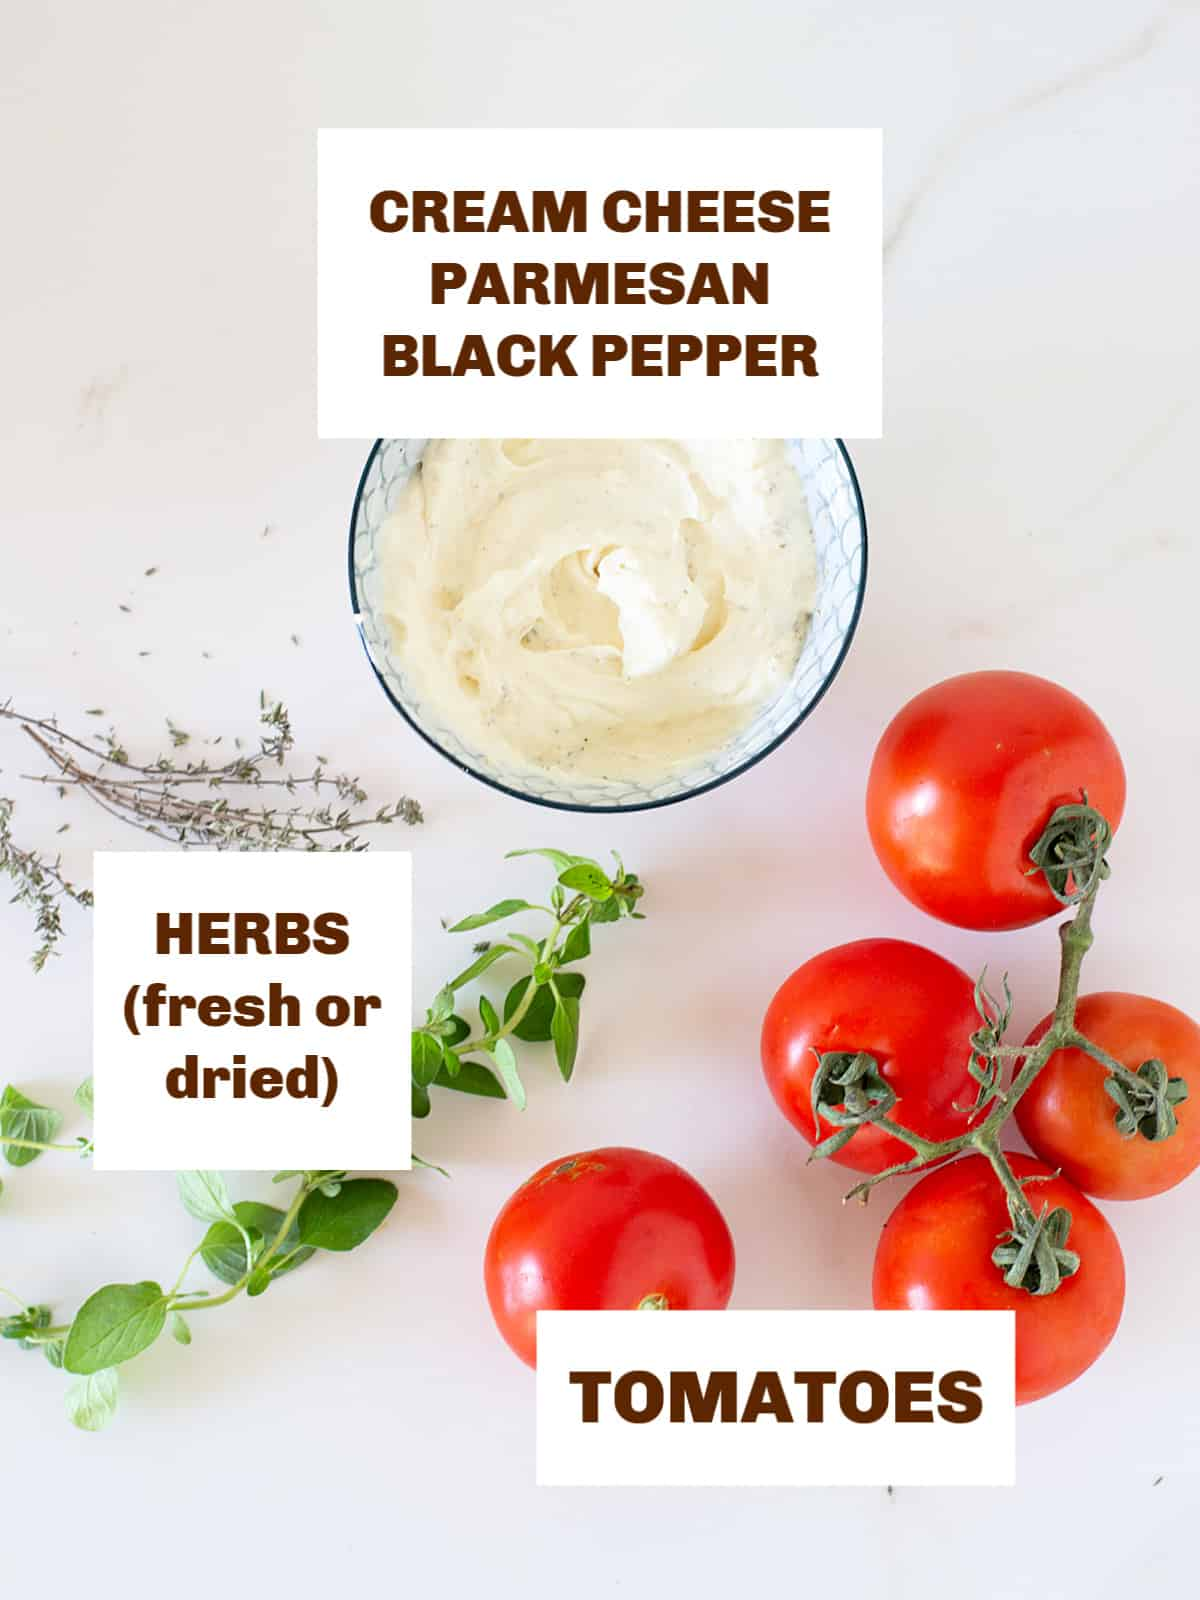 tomatoes, bowl with soft cheese, herbs, white surface, image with text